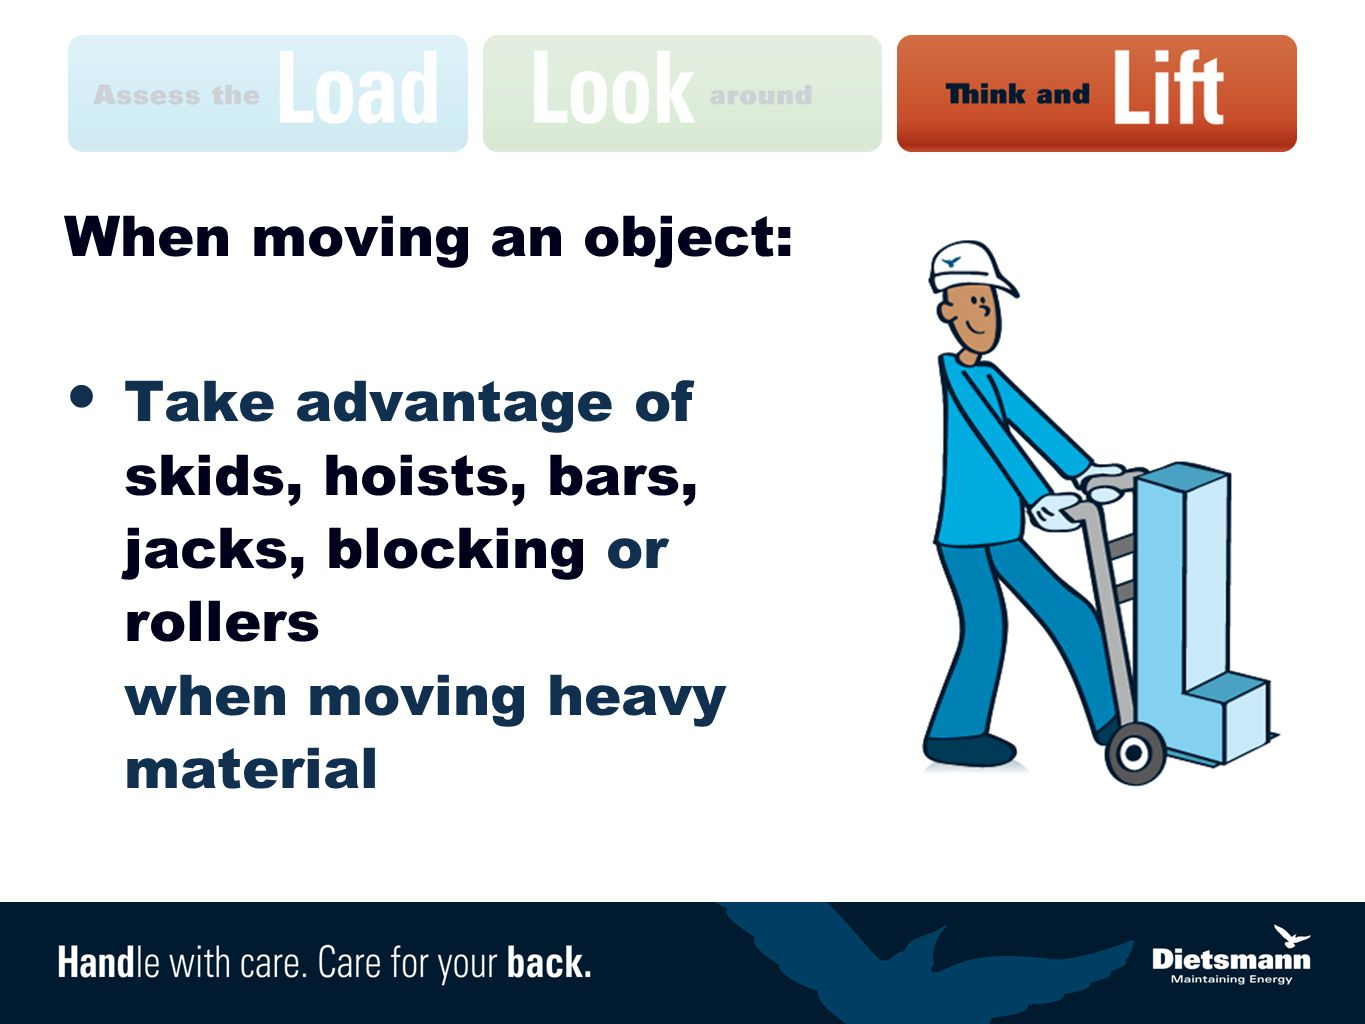 When moving an object: Take advantage of skids, hoists, bars, jacks, blocking or rollers when moving heavy material.